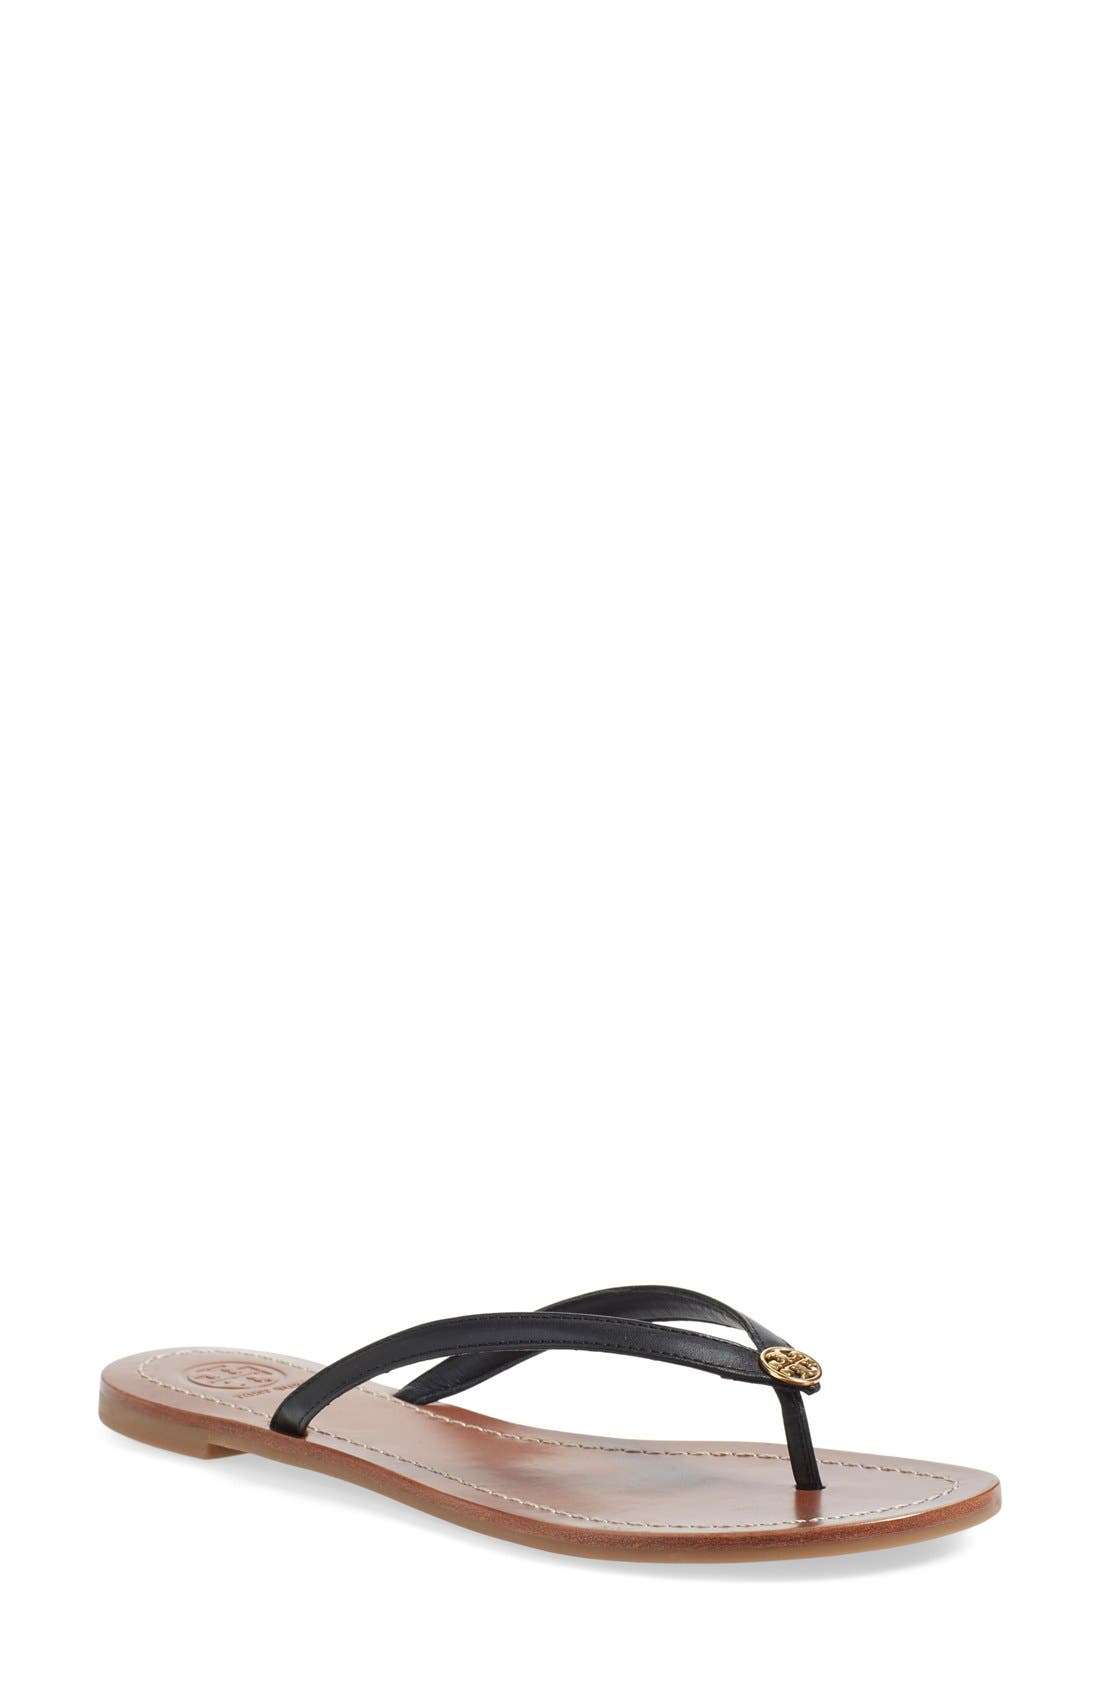 TORY BURCH, 'Terra' Flip Flop, Main thumbnail 1, color, 001